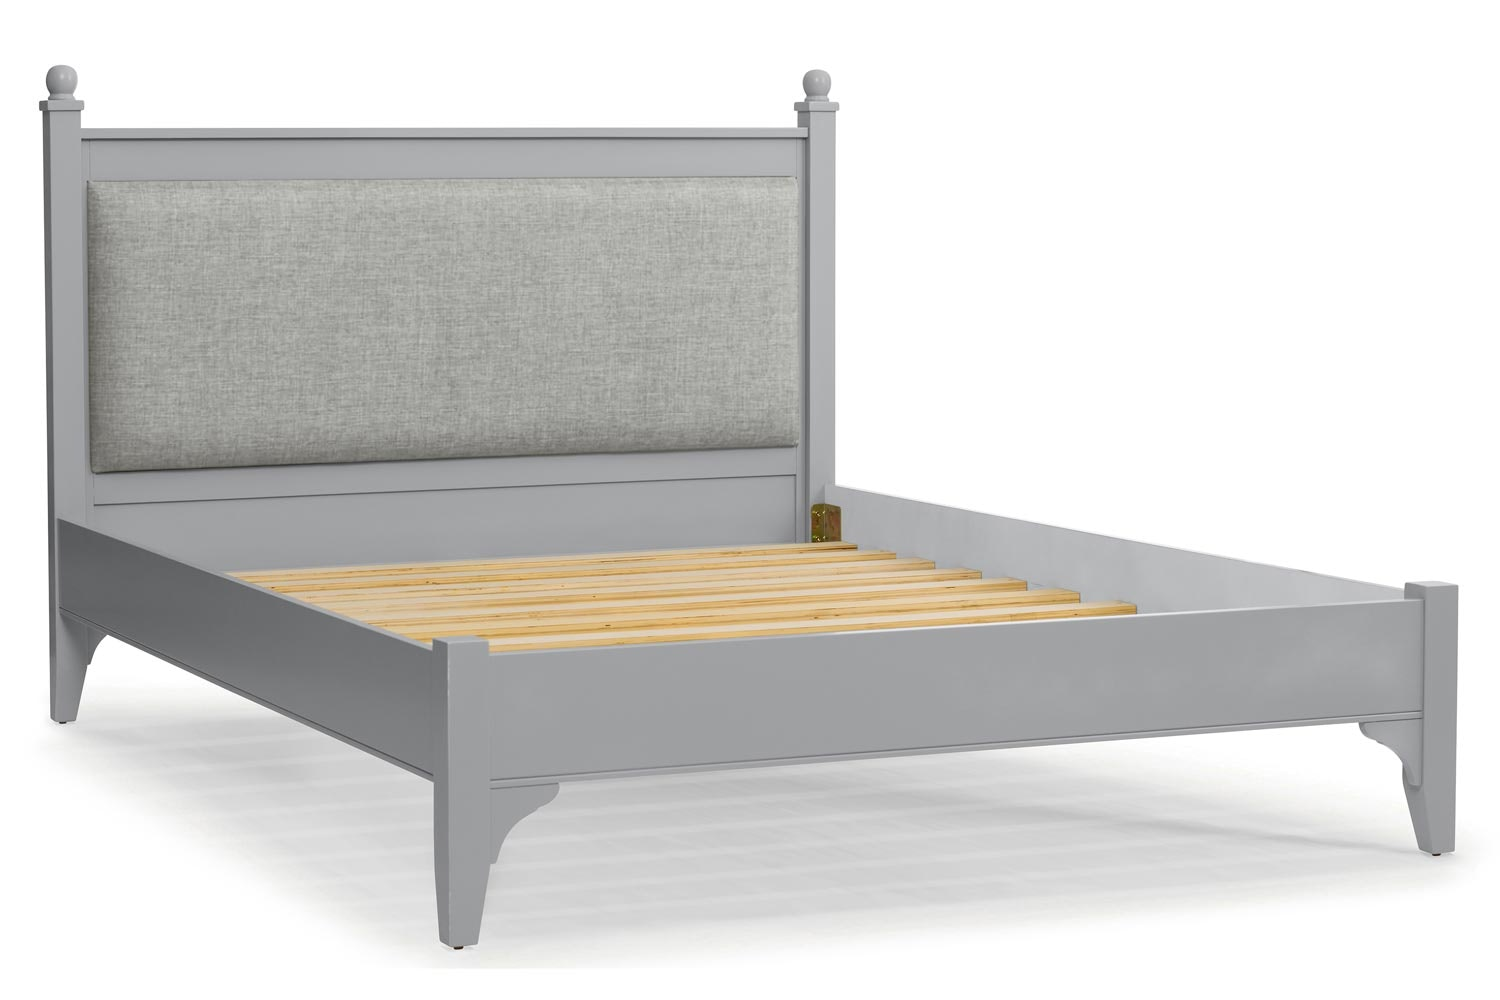 Lynwood Bed Frame | 5ft | Tweed Stone&Vintage Silver